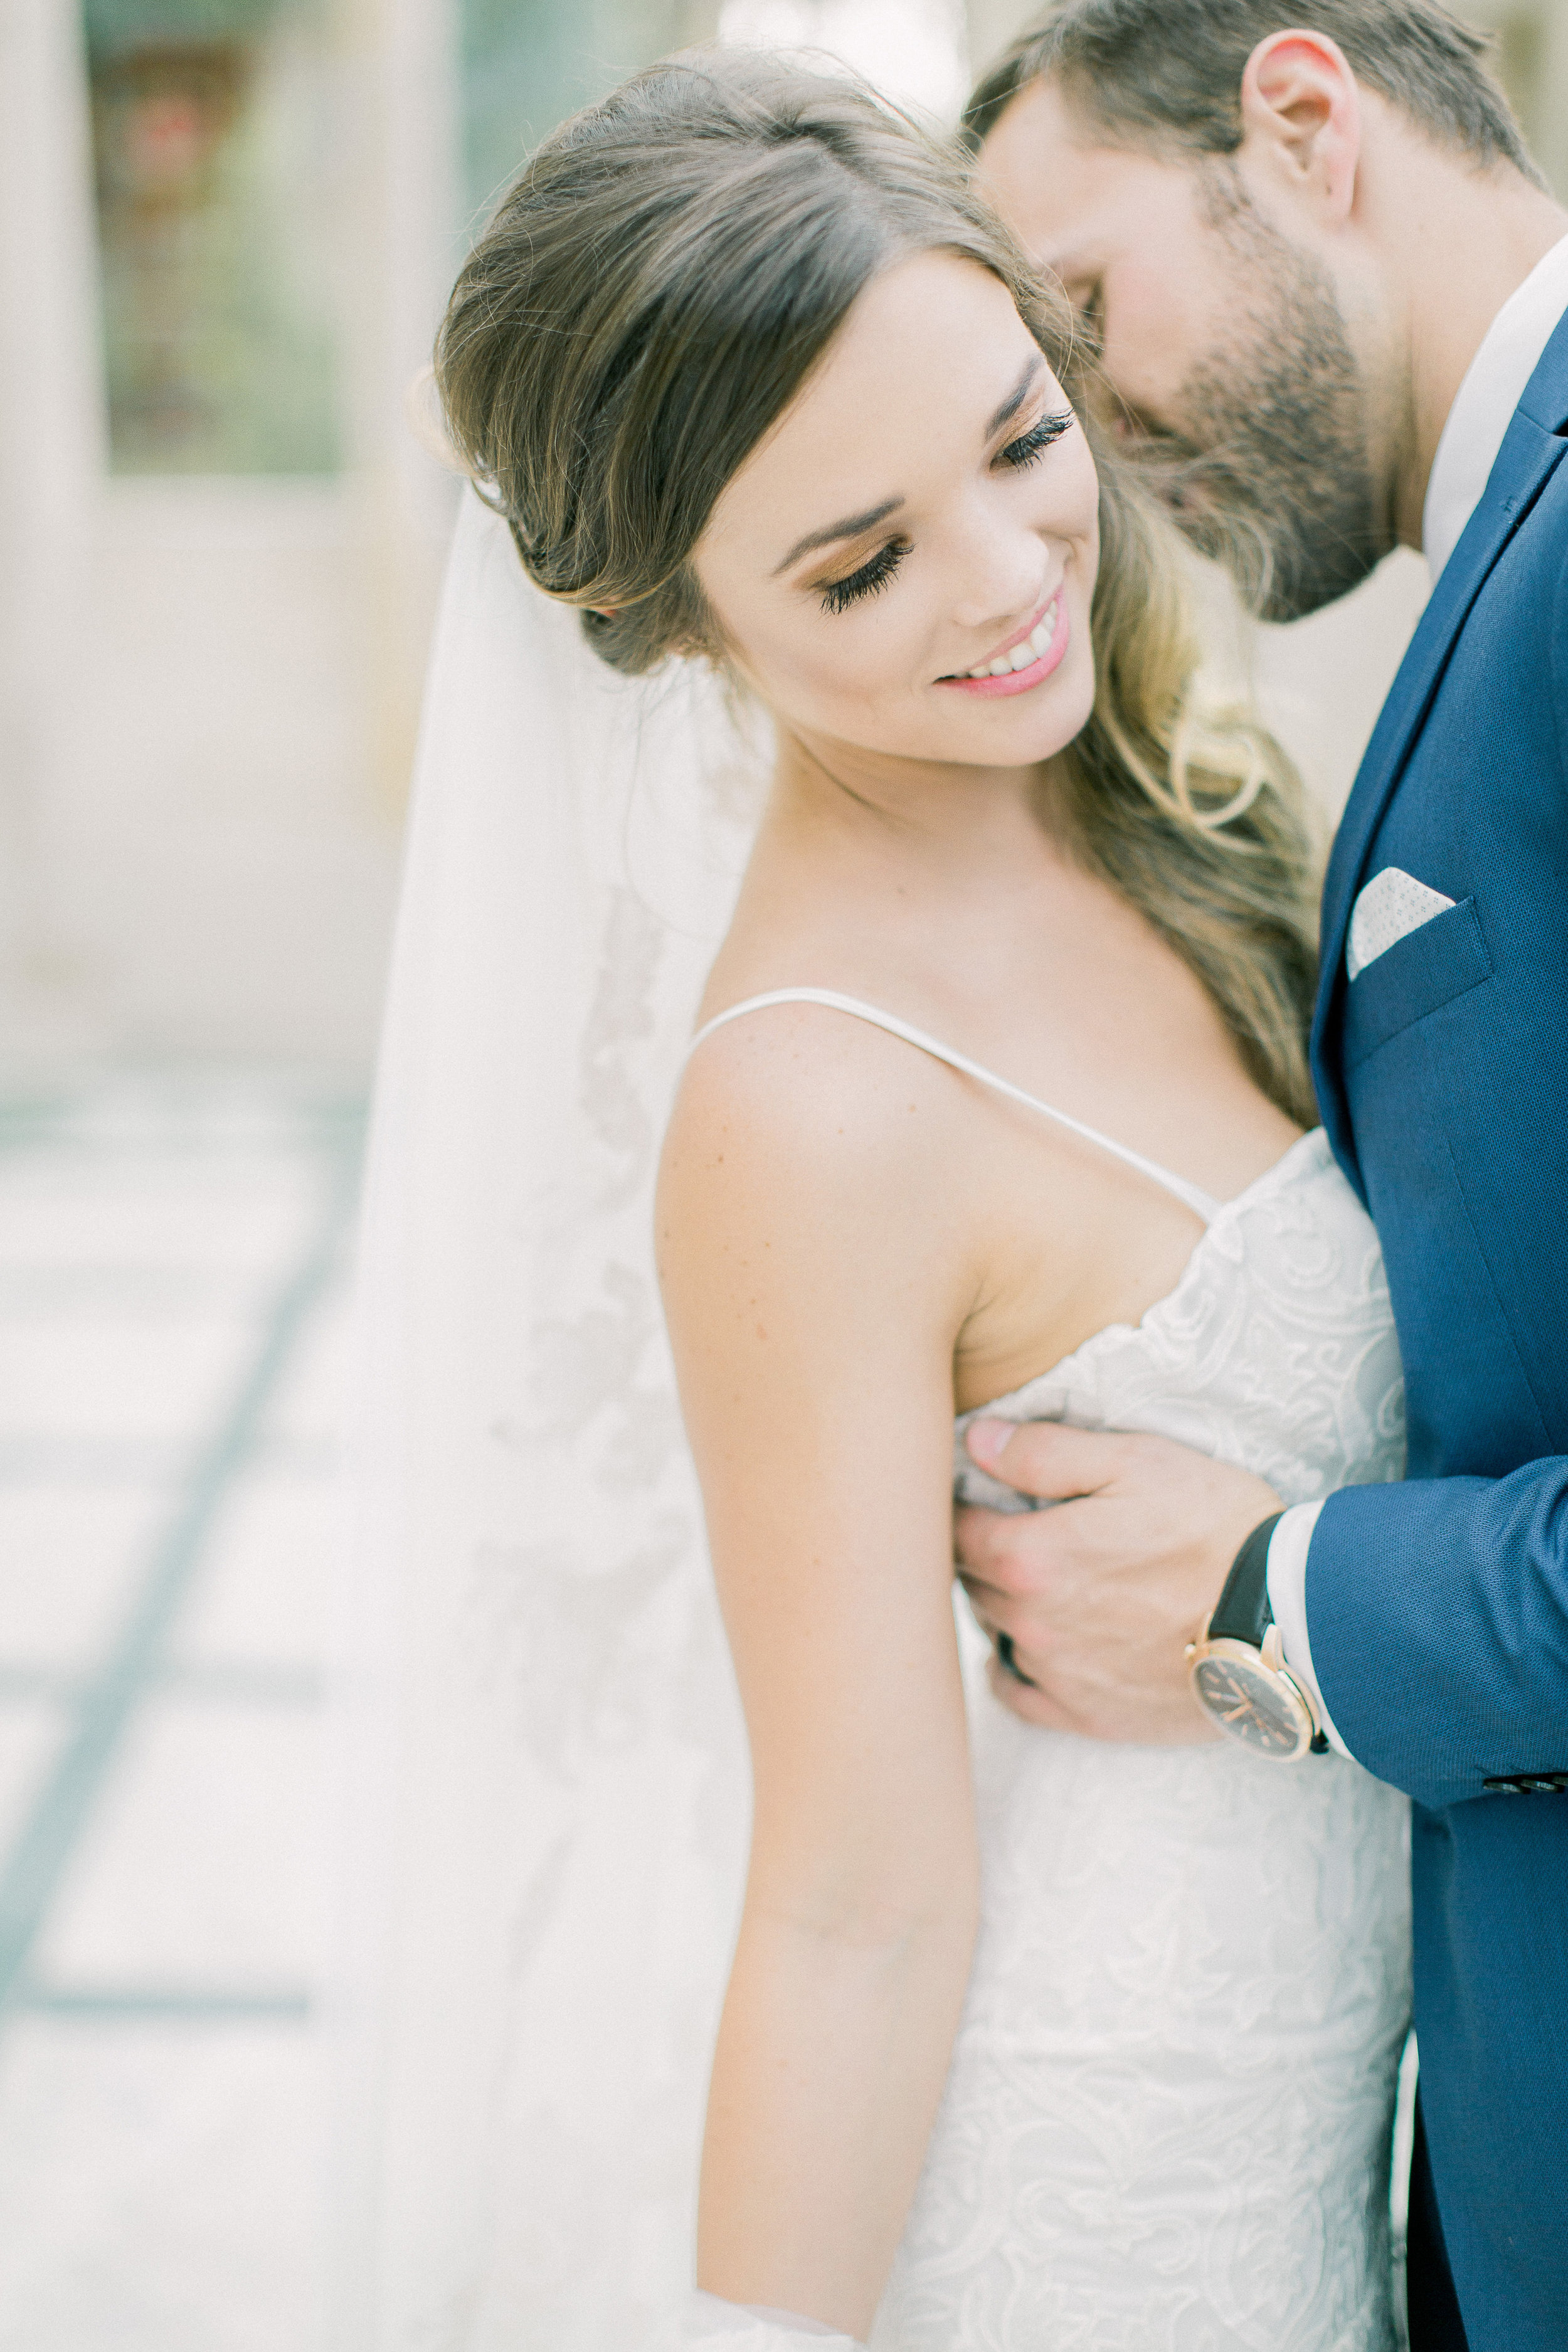 South africa wedding photographer clareece smit photography74.jpg